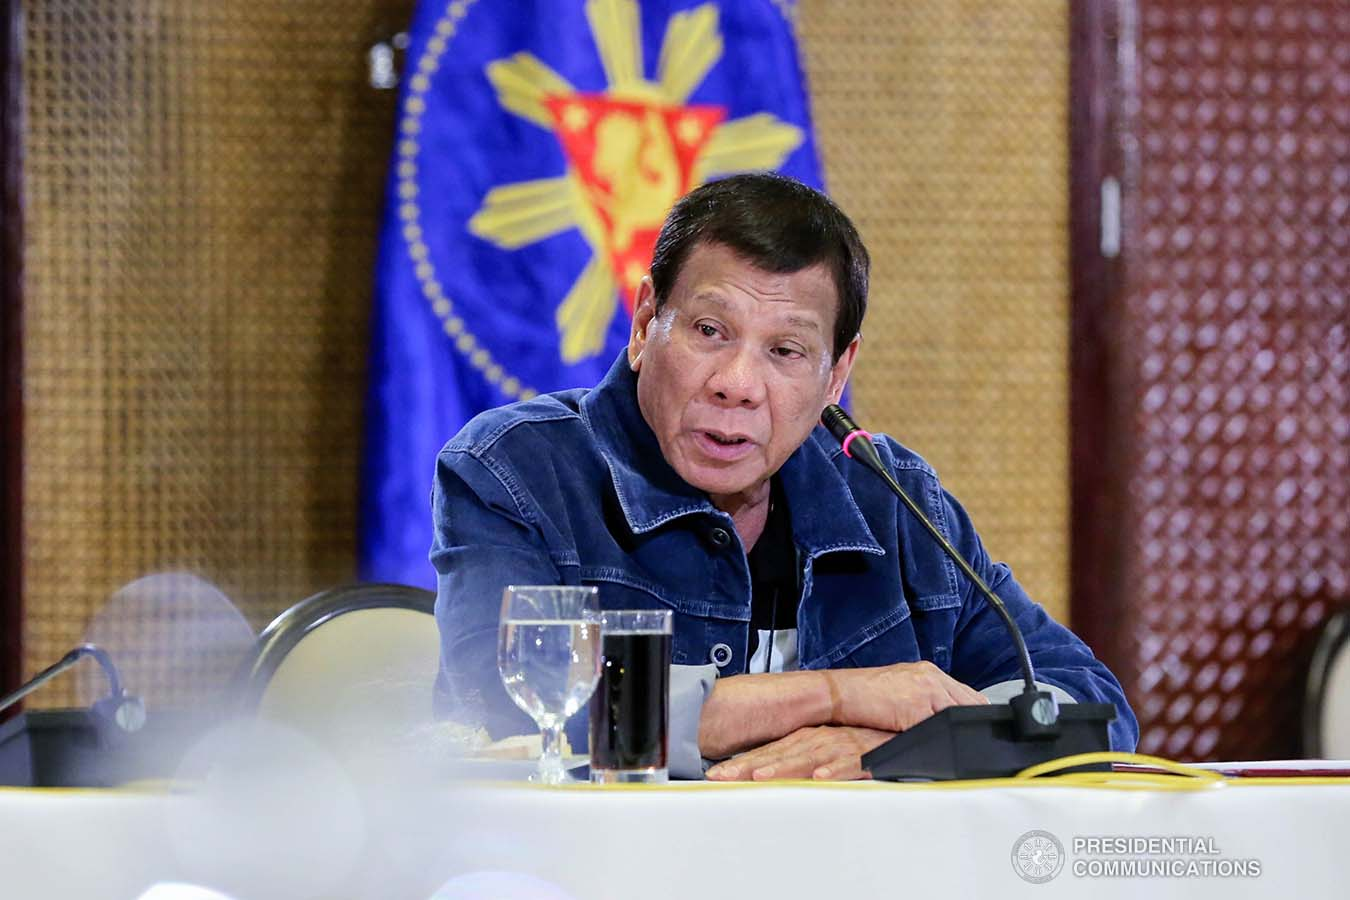 President Rodrigo Roa Duterte presides over a meeting with the Inter-Agency Task Force on the Emerging Infectious Diseases (IATF-EID) at the Malacañan Palace on March 12, 2020. RICHARD MADELO/PRESIDENTIAL PHOTO